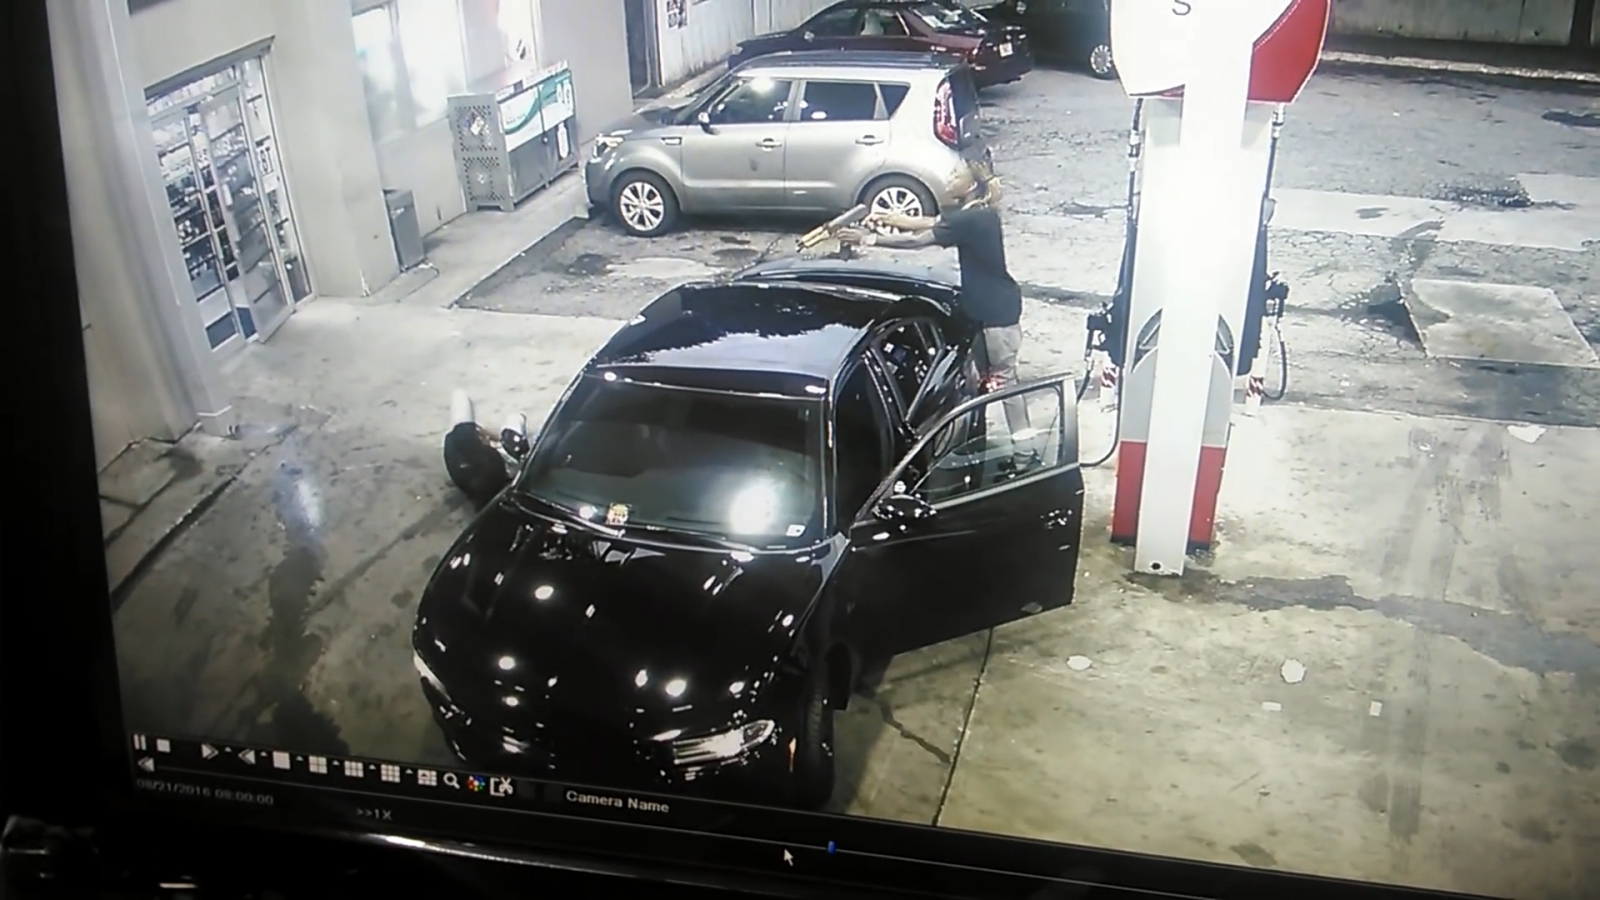 Atlanta petrol station shootout caught on CCTV